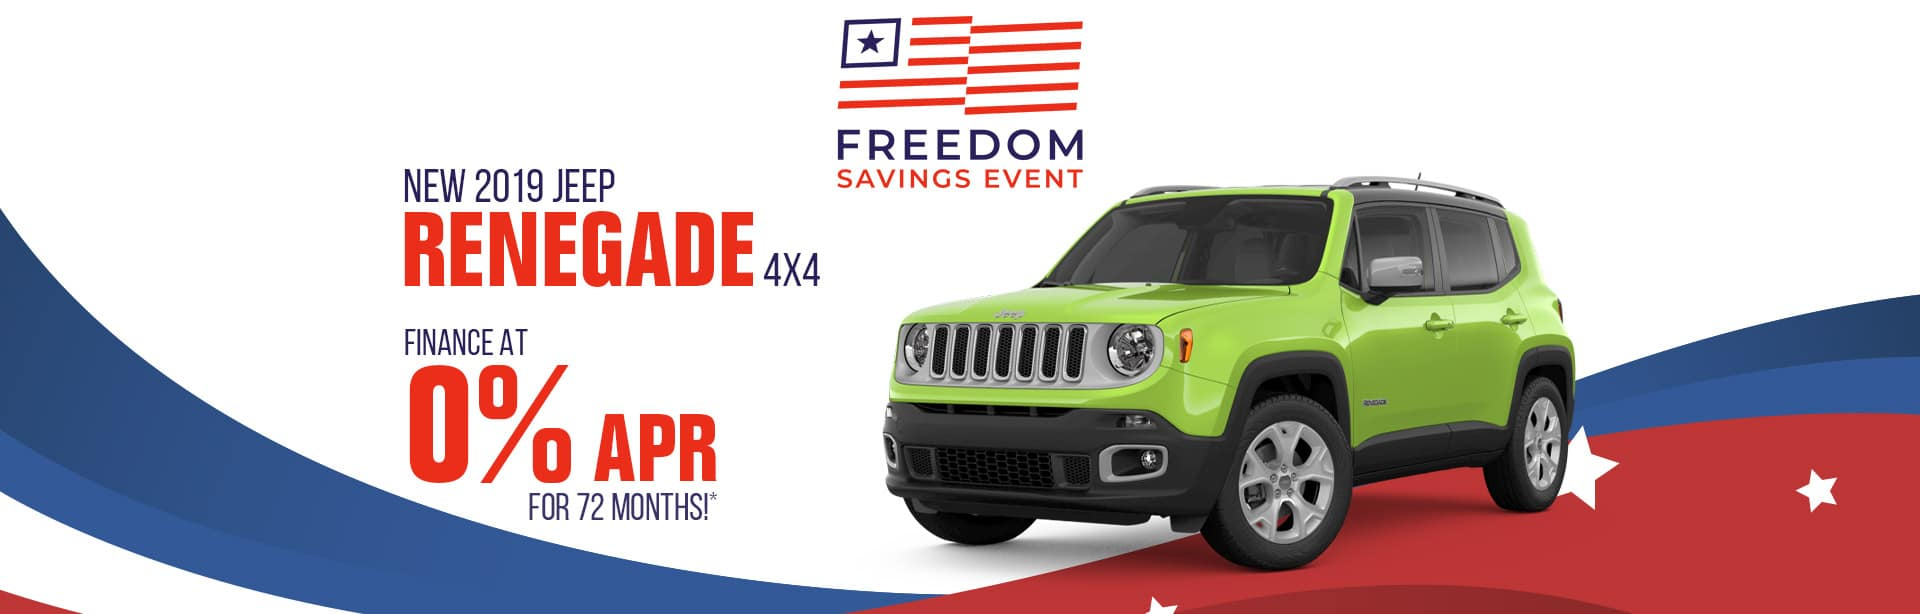 New Jeep Renegade Dealer in Brazil, Indiana.